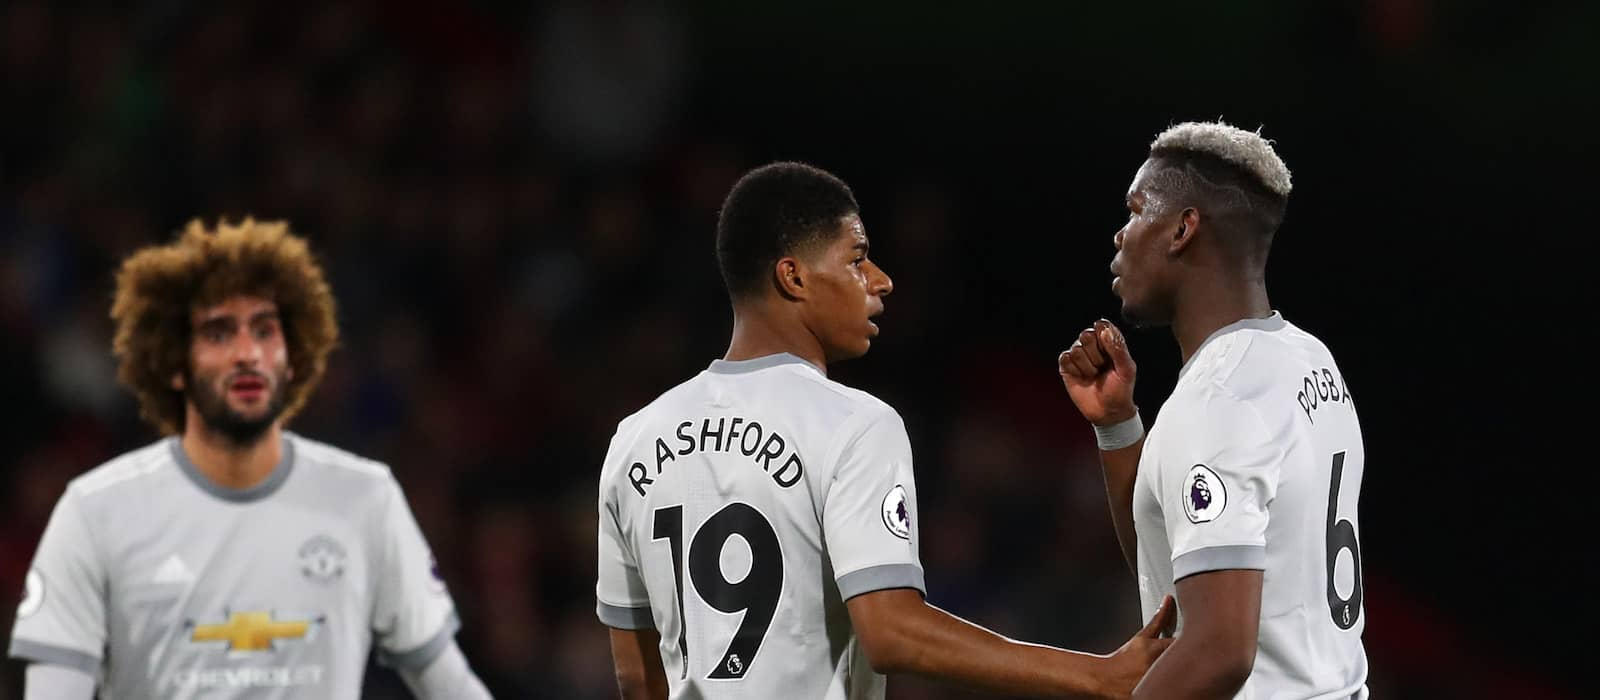 Alan Shearer: Marcus Rashford was rushed into Manchester United first team too early